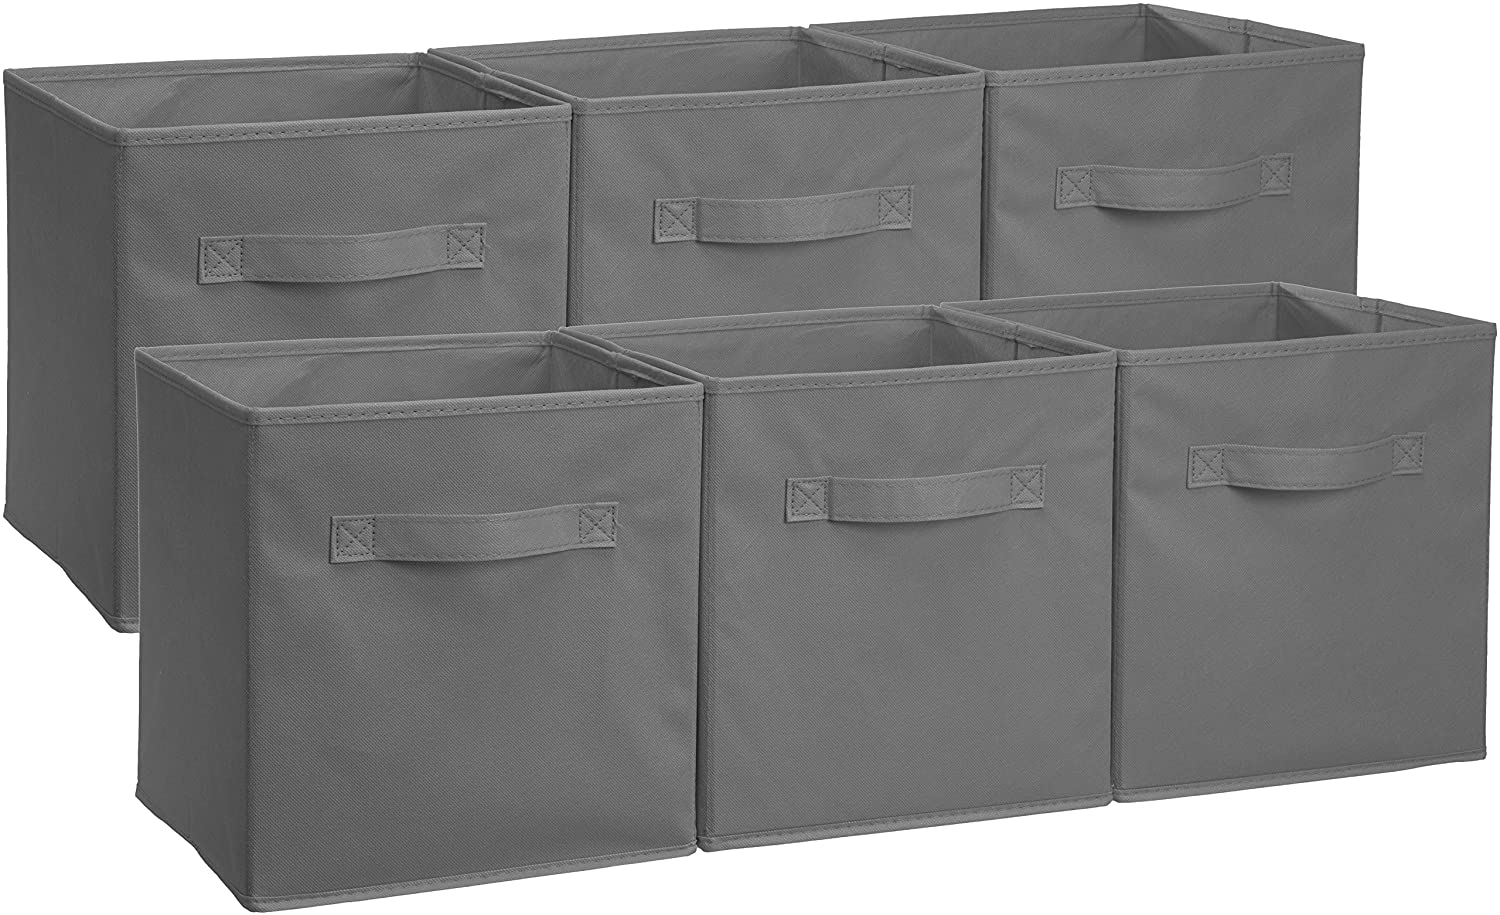 Amazon Com Amazon Basics Collapsible Fabric Storage Cubes Organizer With Handles Gray Pack Of 6